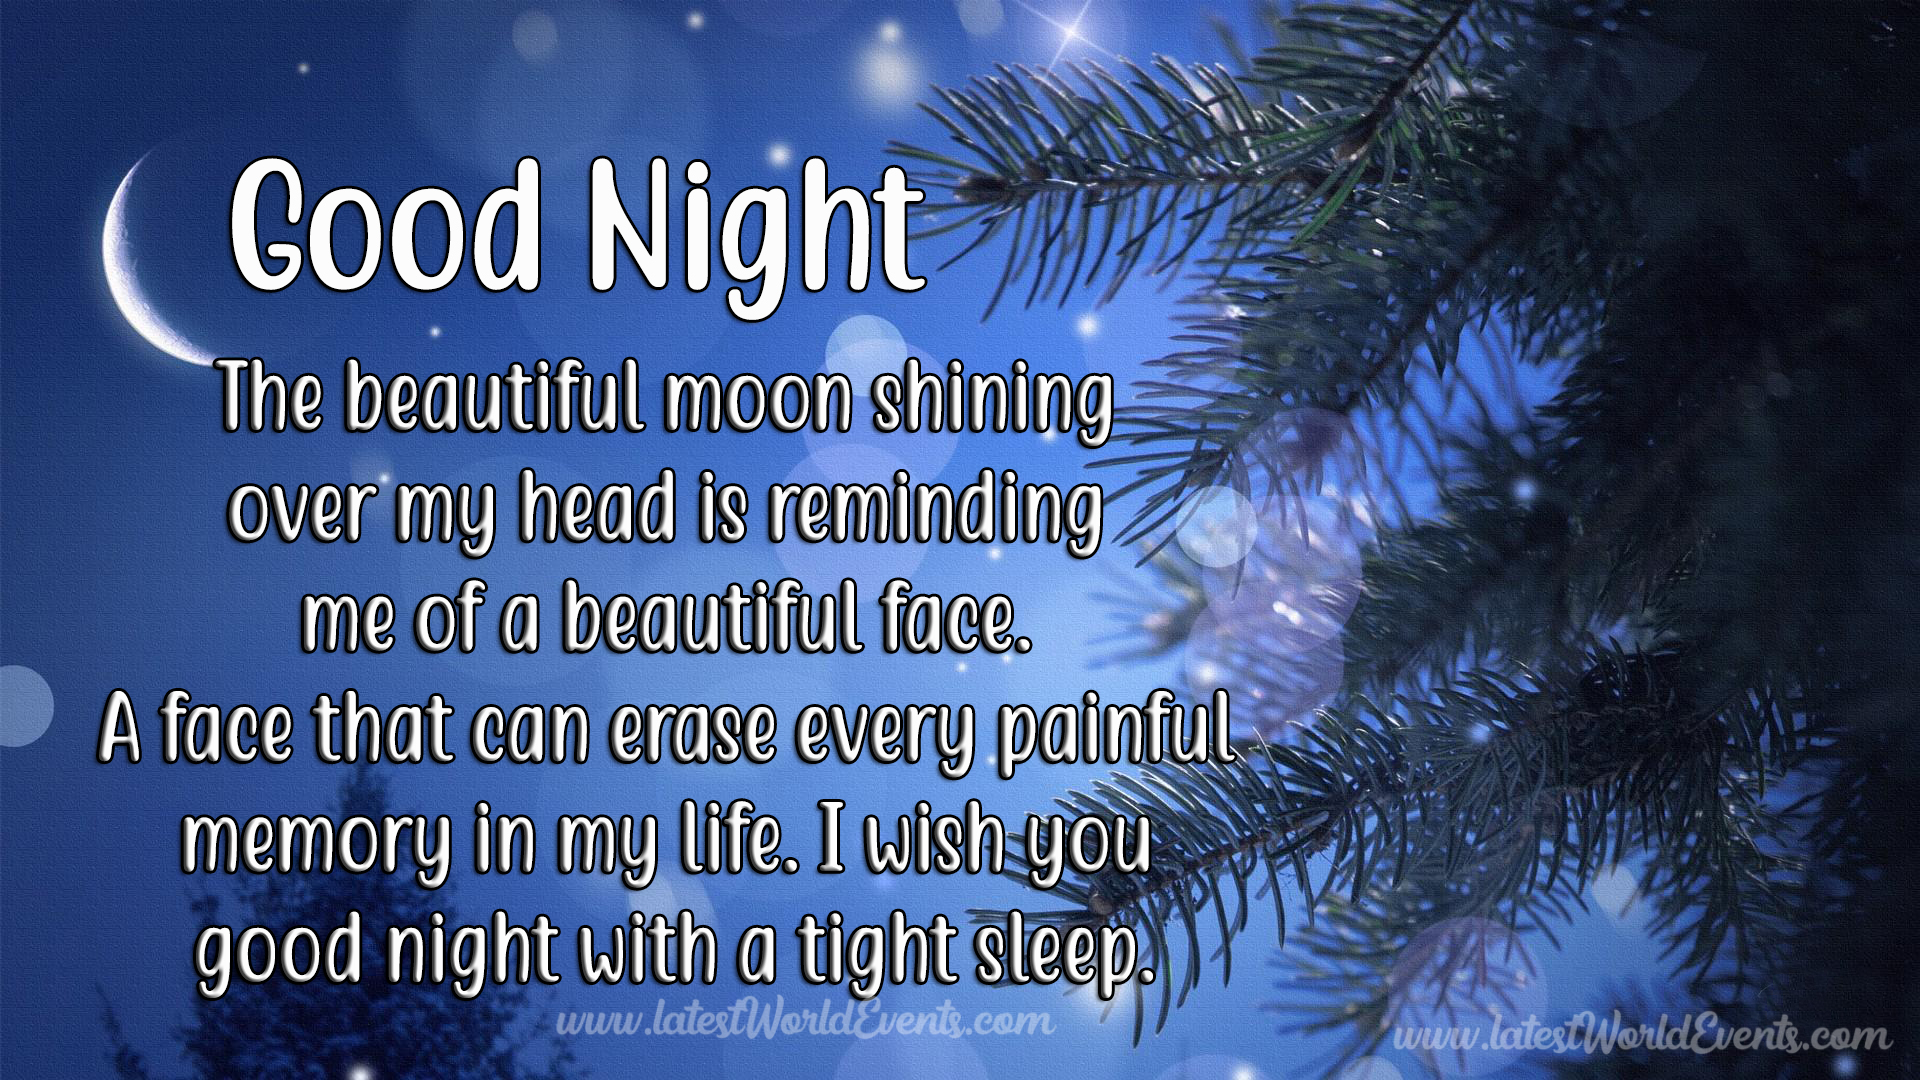 Inspirational Good Night Quotes - Latest World Events